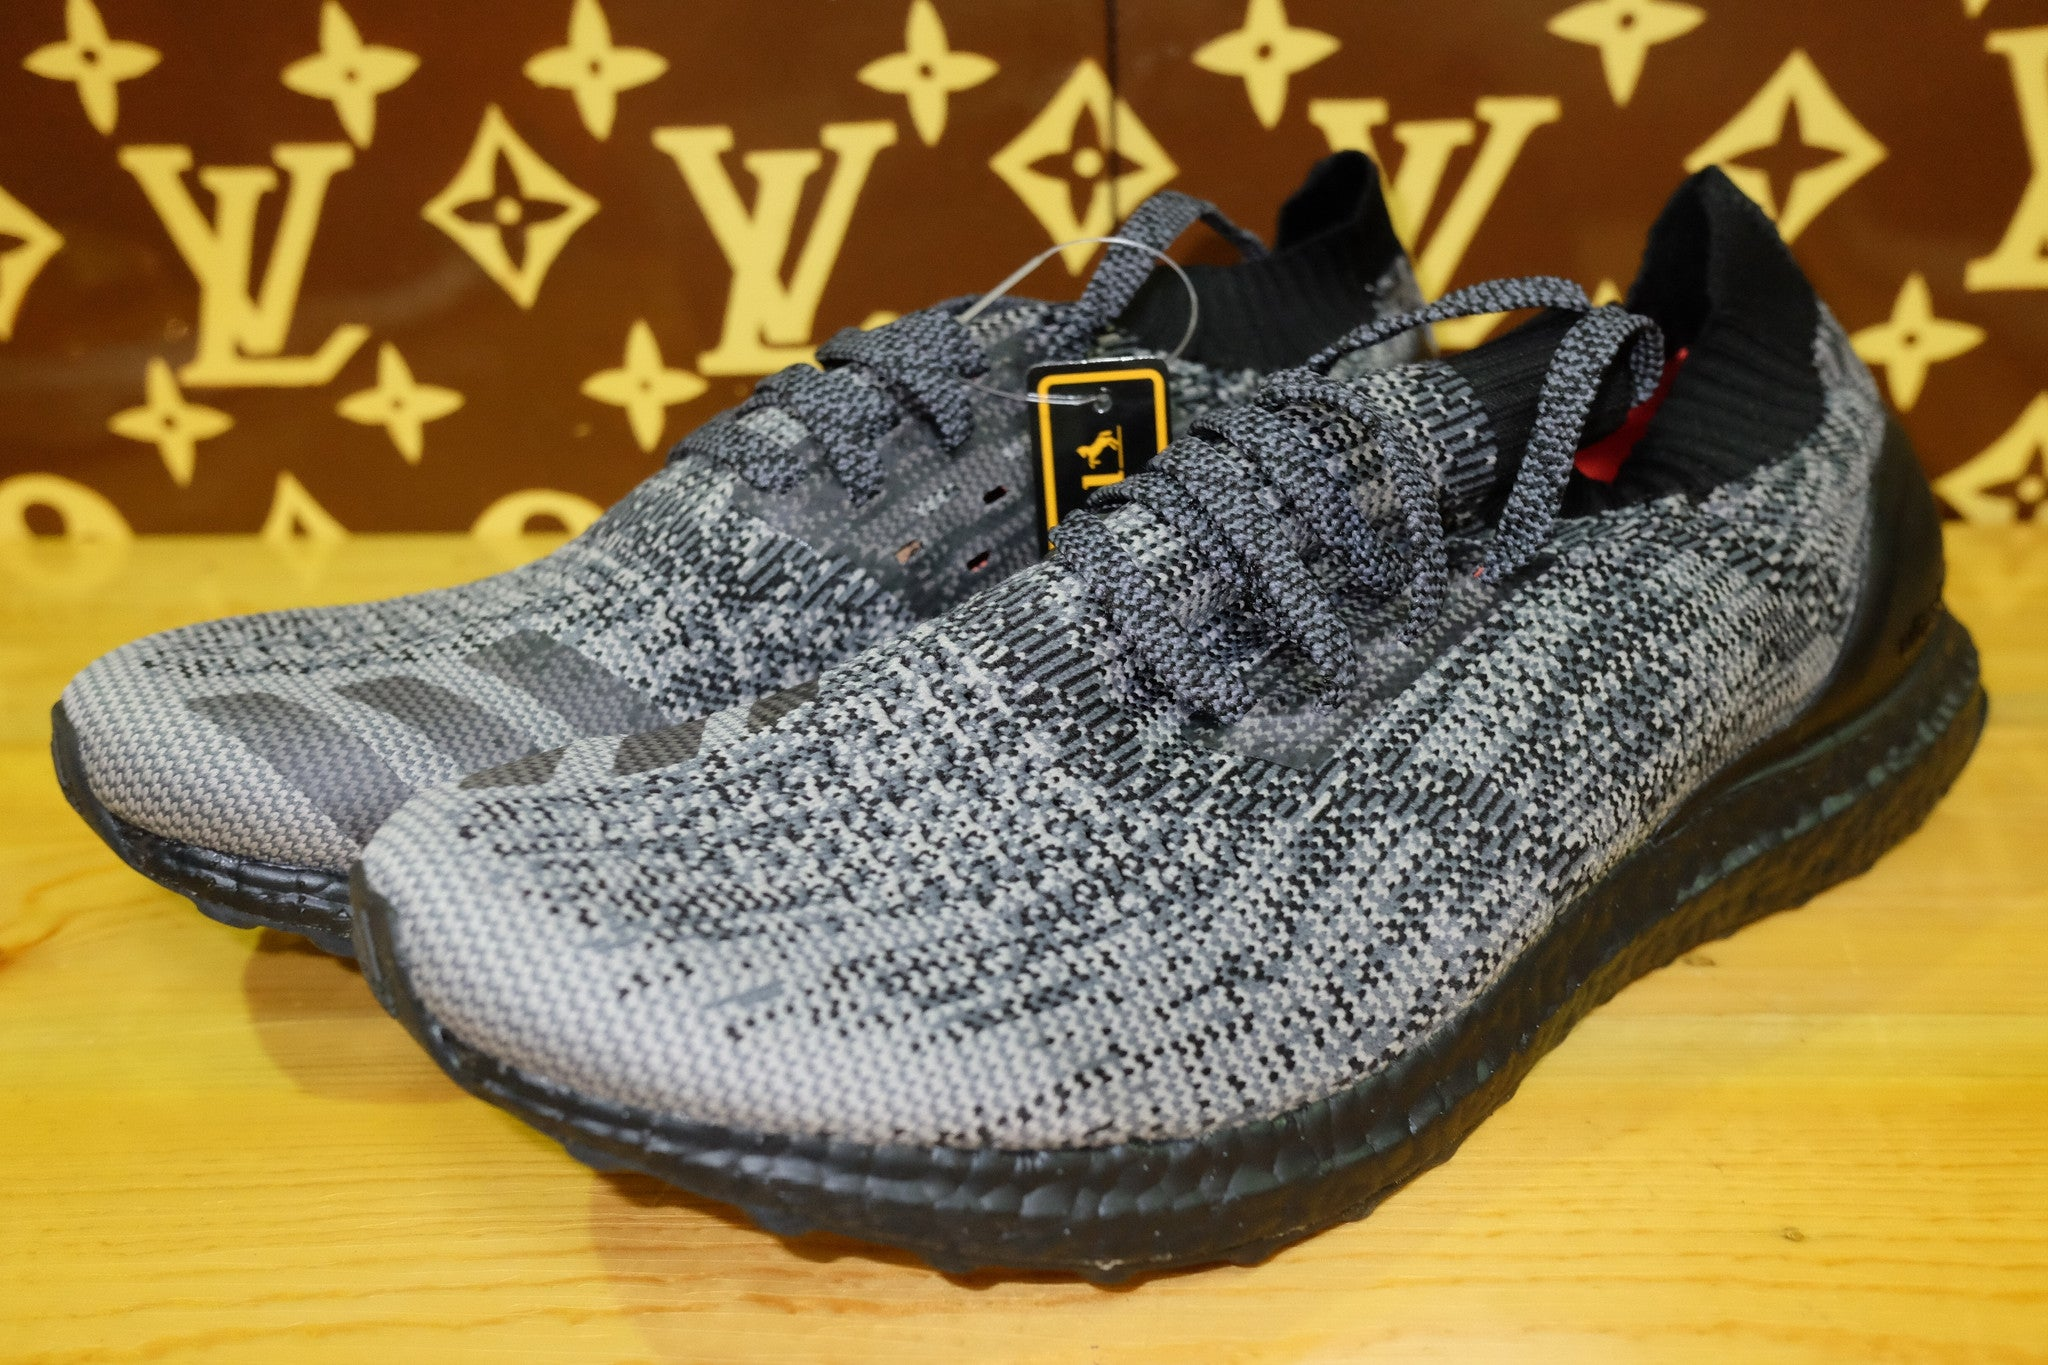 a73745f873616 ... adidas Originals UltraBoost Uncaged LTD V1  Triple Core Black  DarkSole.net (2) ...